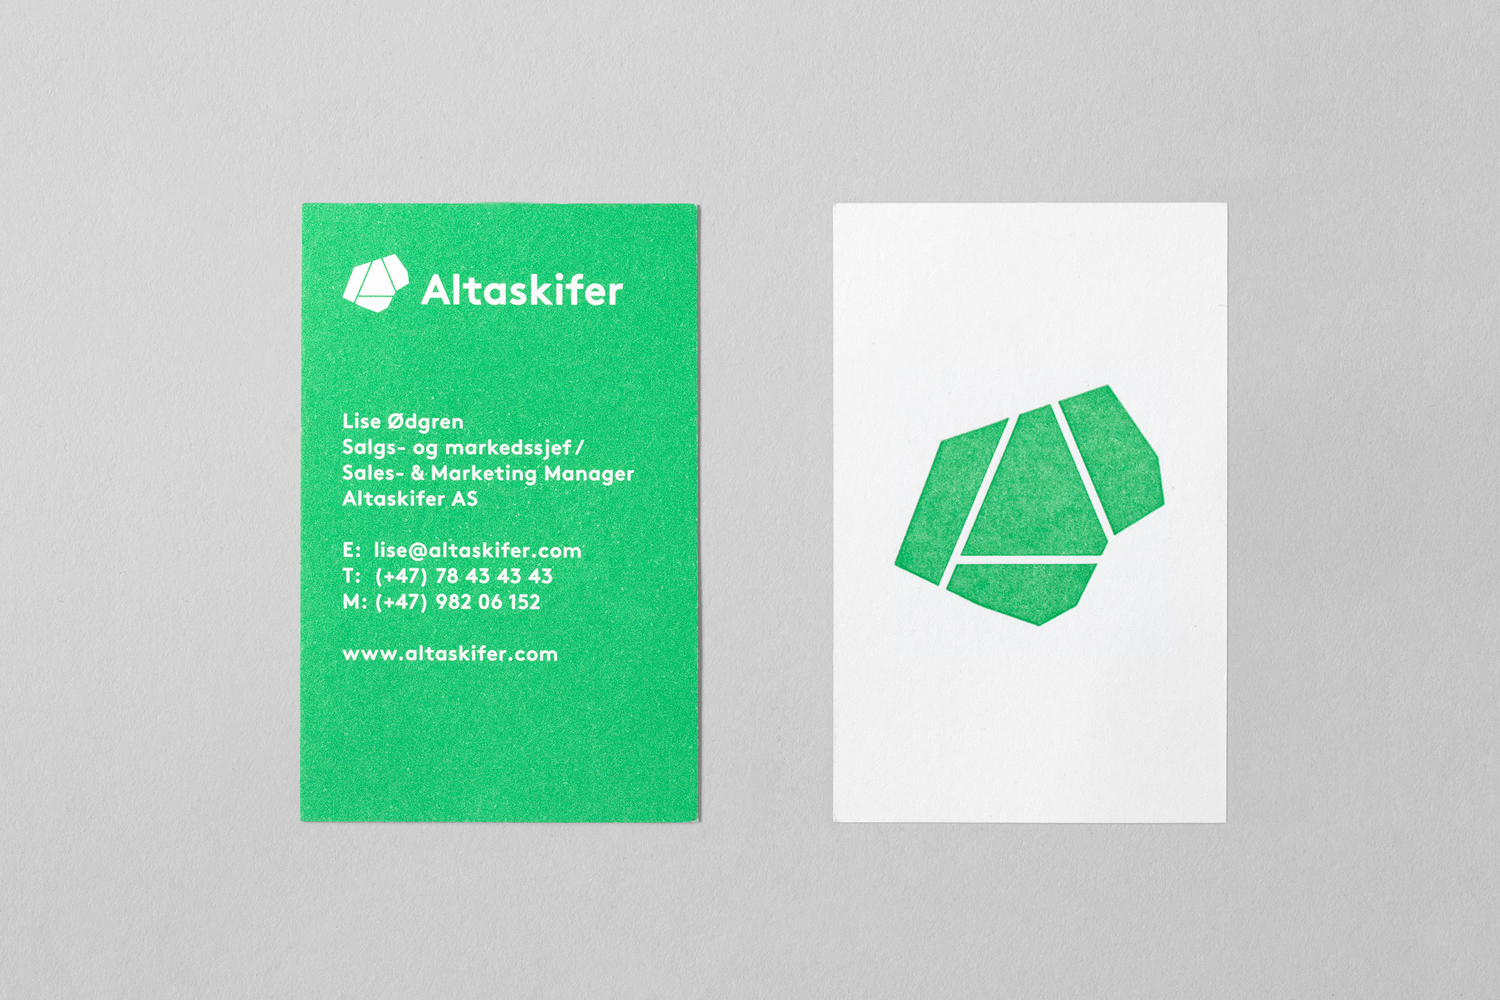 Brand identity and business cards for Alta Quartzite mining and sales business Altaskifer designed by Neue, Norway